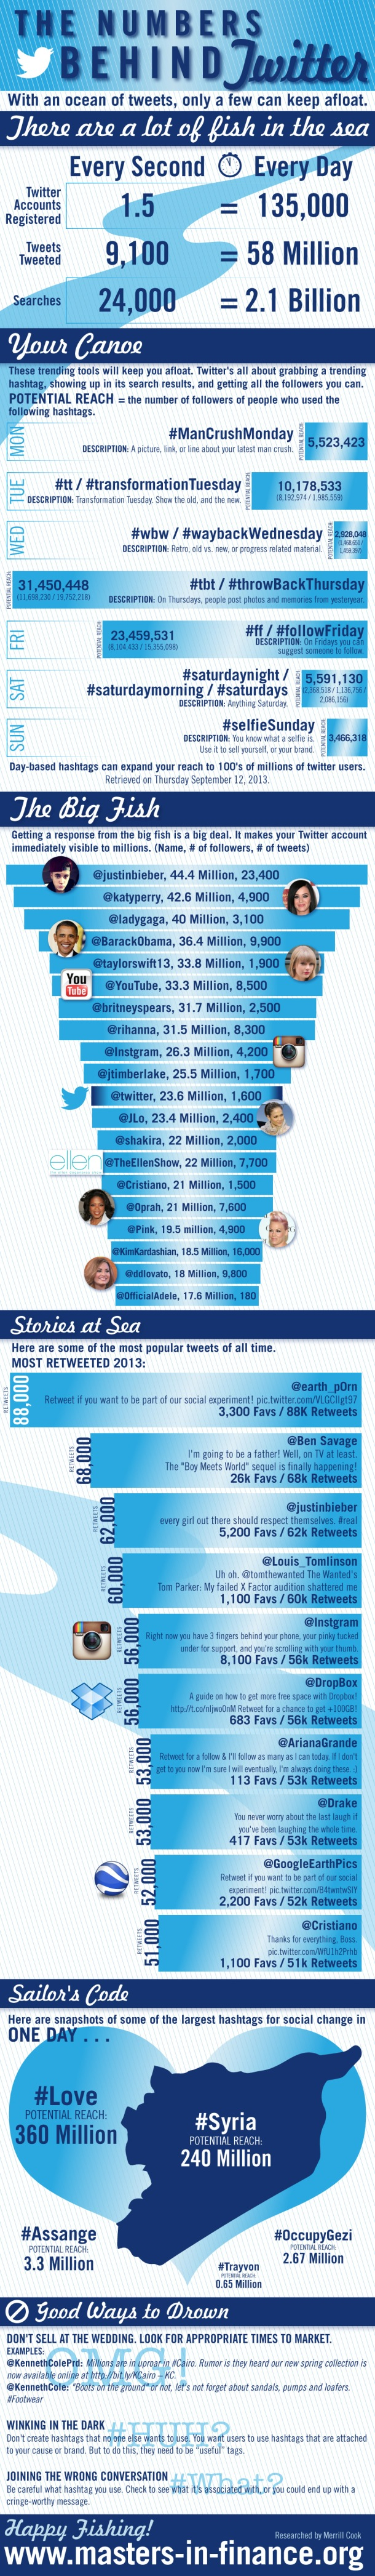 The Numbers Behind Twitter